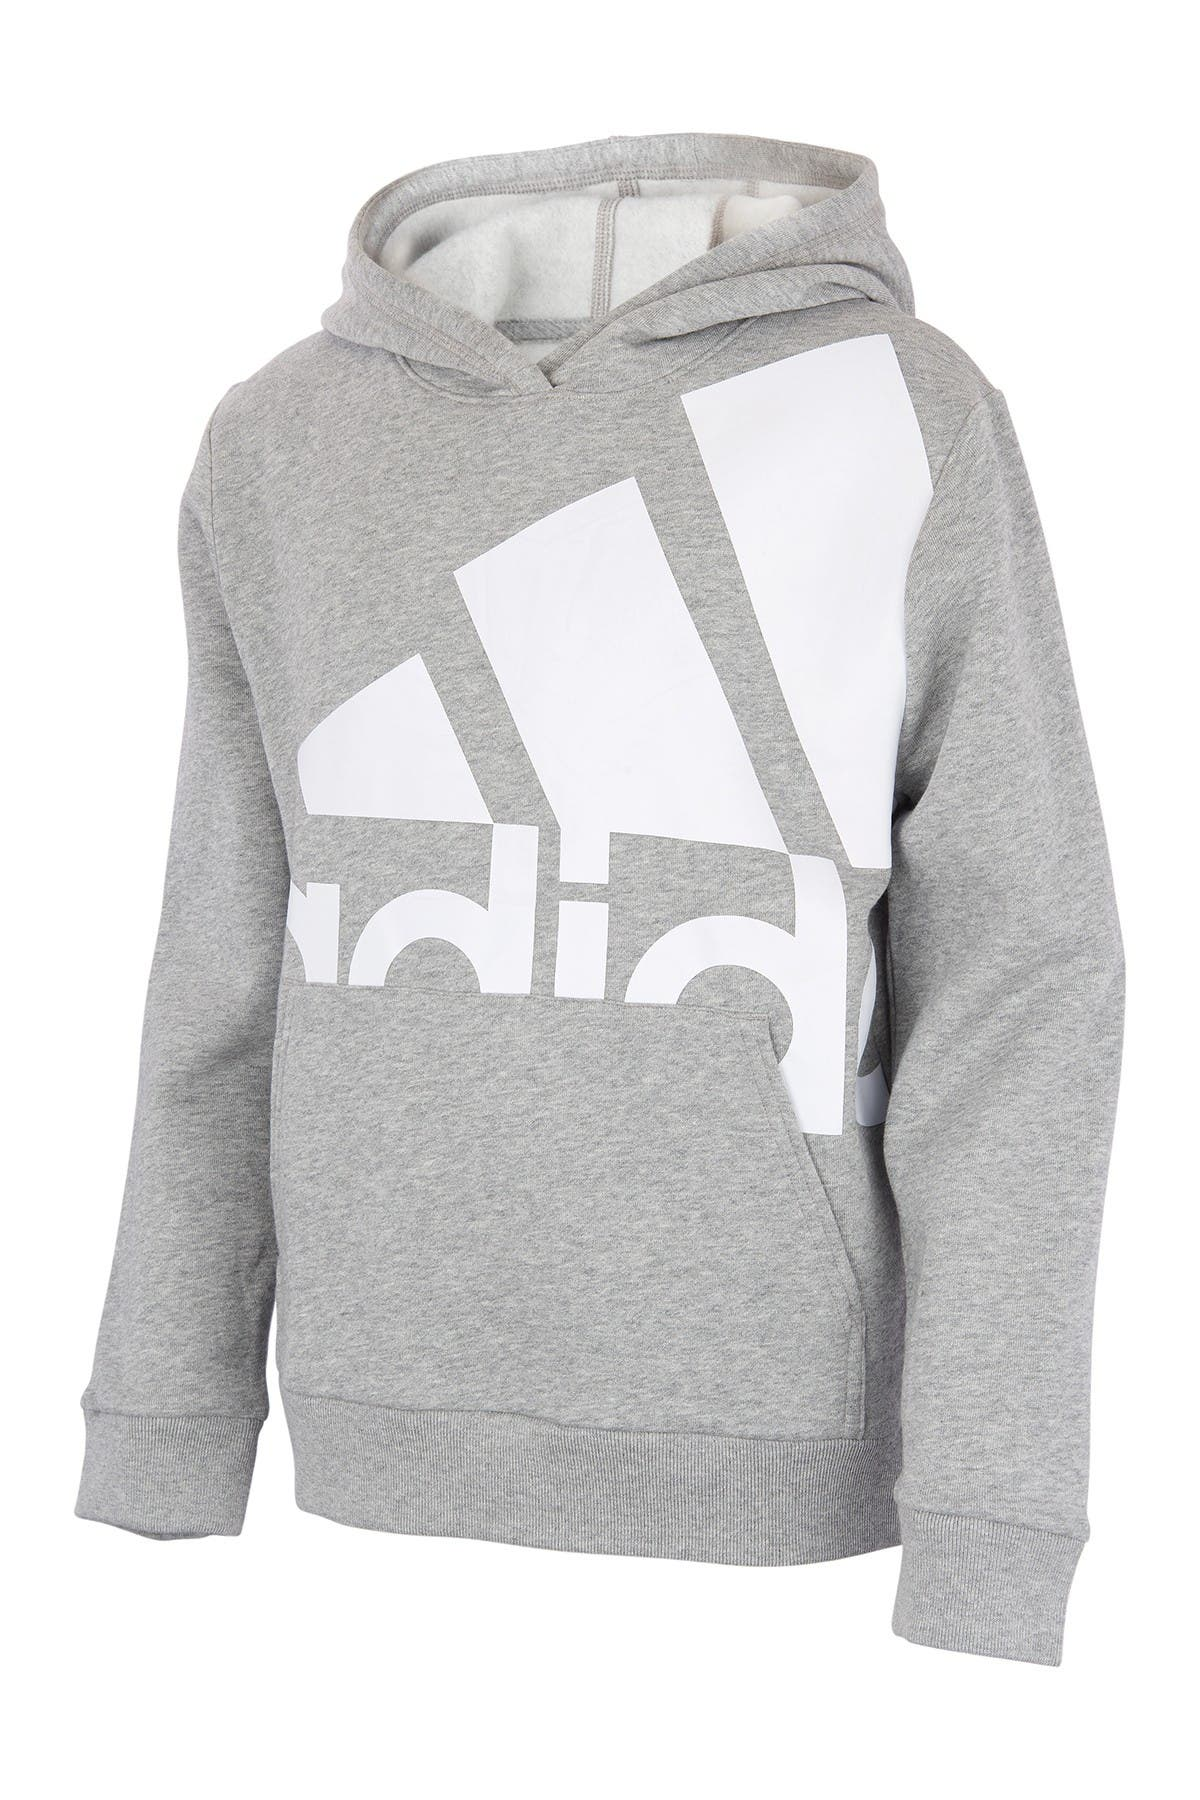 Image of adidas Statement BOS Pullover Hoodie